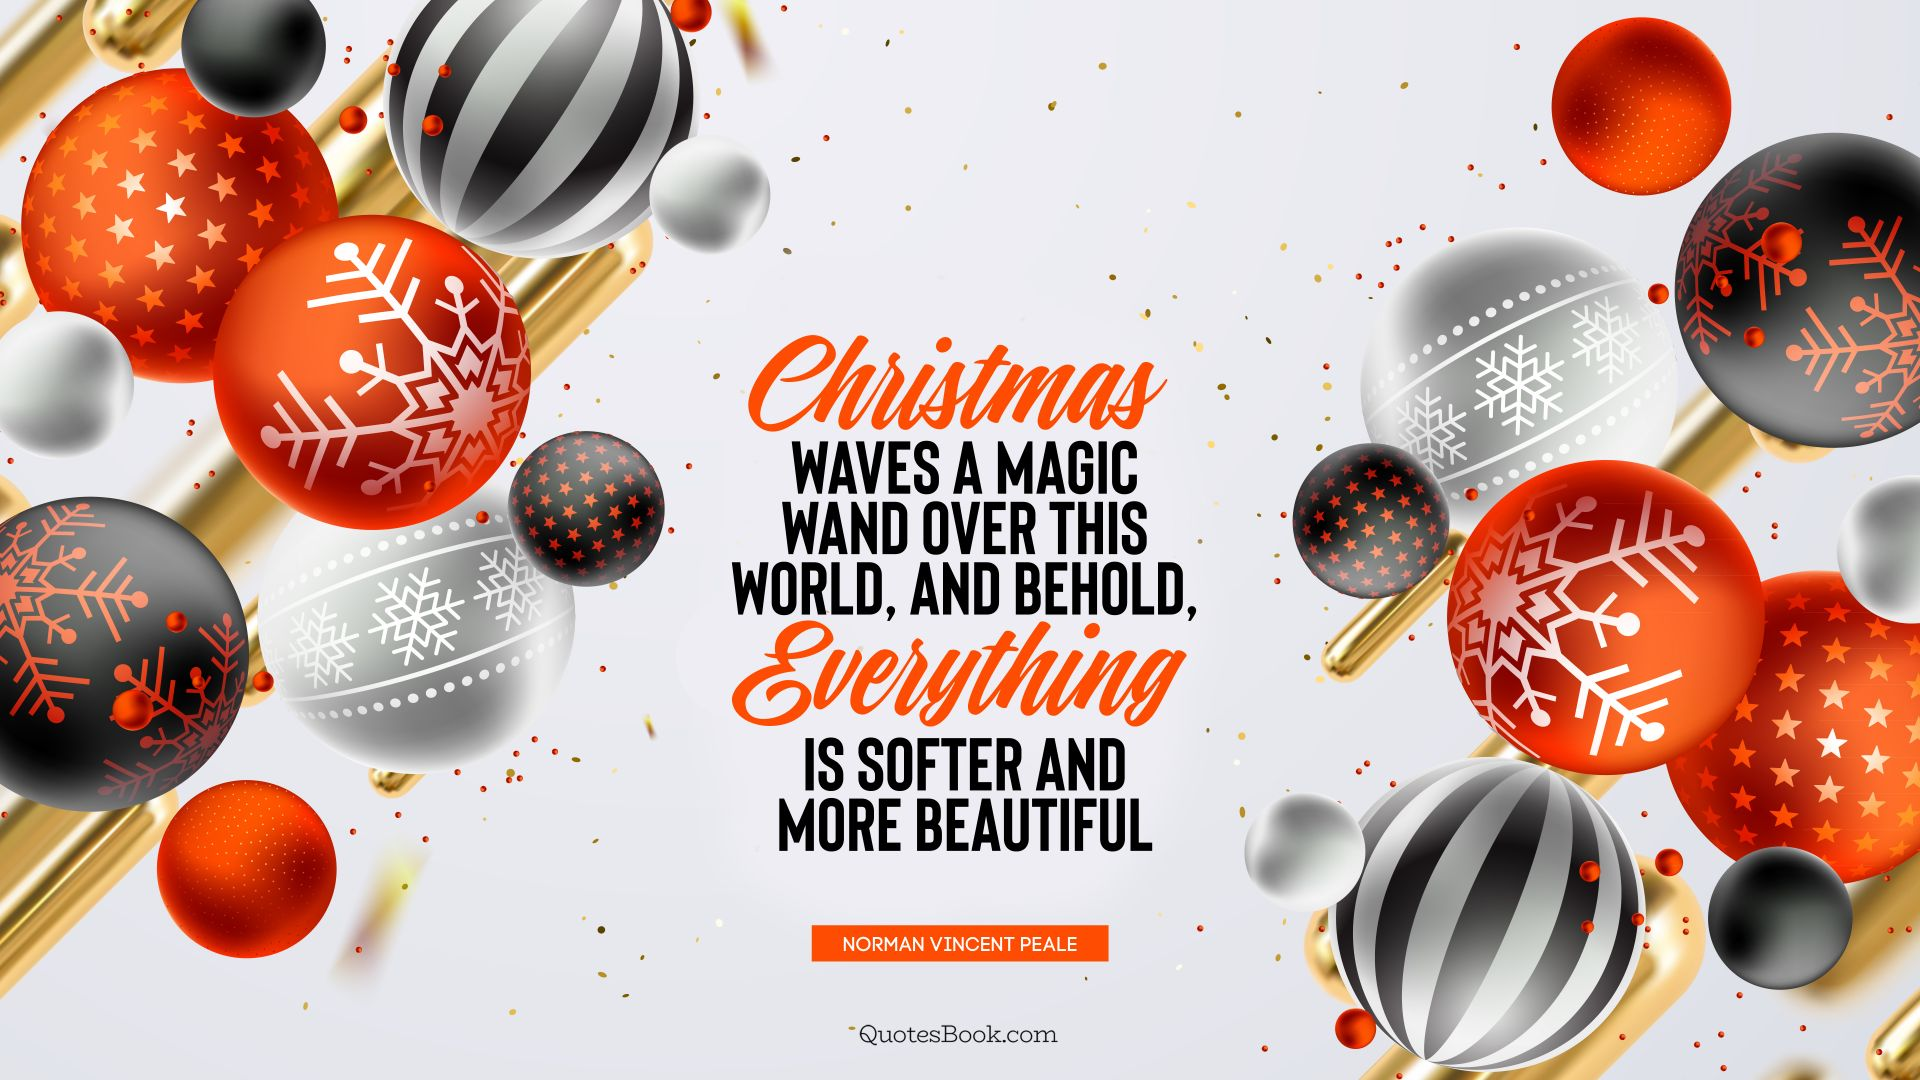 Christmas waves a magic wand over this world, and behold, everything is softer and more beautiful. - Quote by Norman Vincent Peale